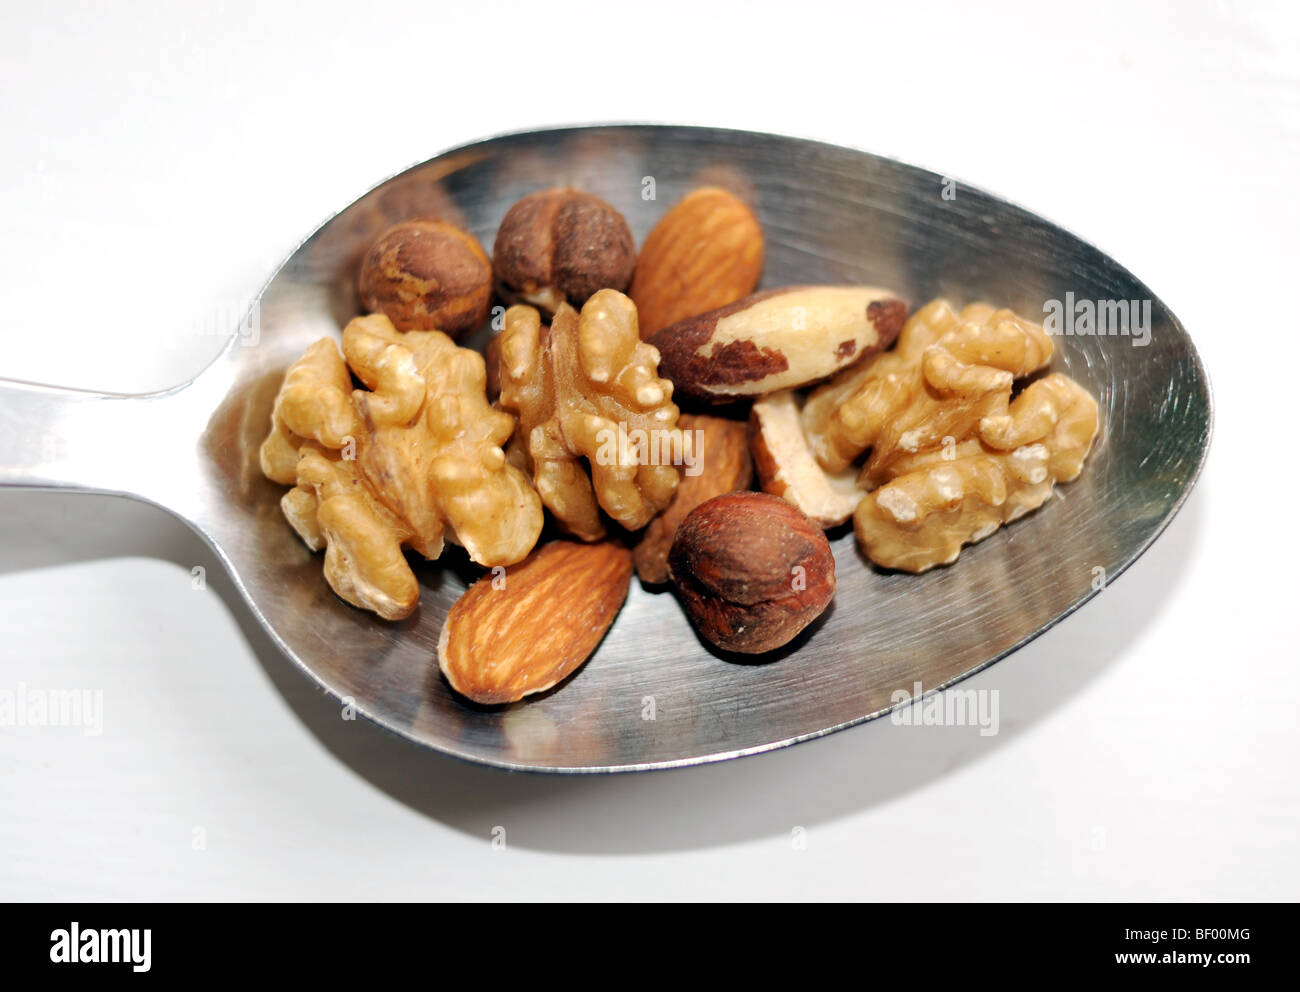 Spoonful of nuts including walnuts hazelnuts brazil nuts and almonds full of protein for healthy diet - Stock Image